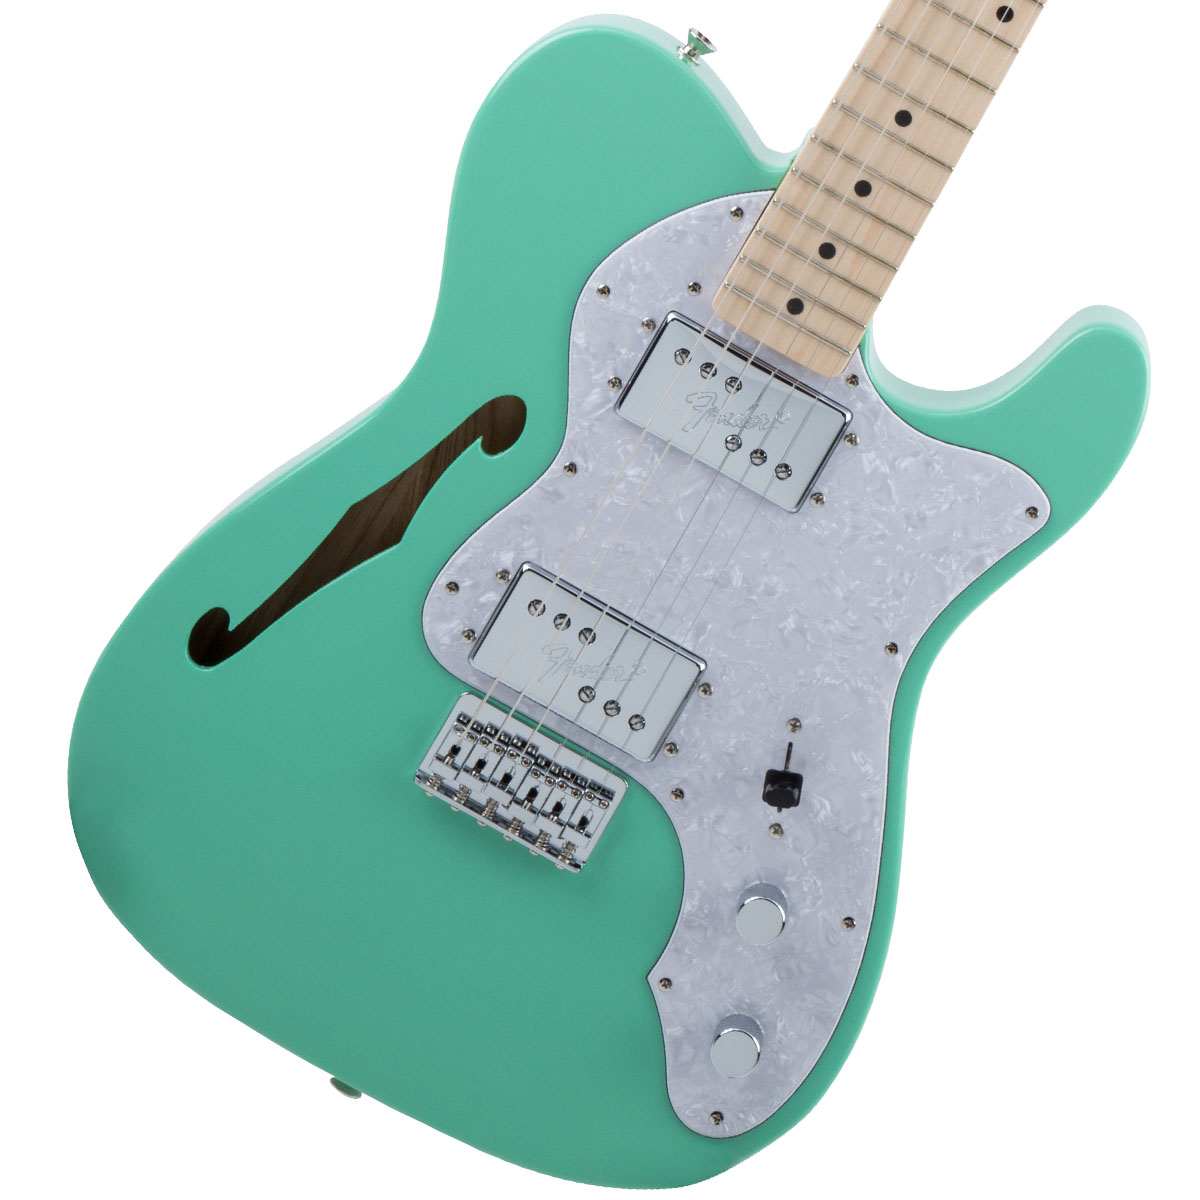 Fender / Made in Japan Traditional 70s Telecaster Thinline Maple Fingerboard Surf Green 《カスタムショップのお手入れ用品を進呈/+671038200》